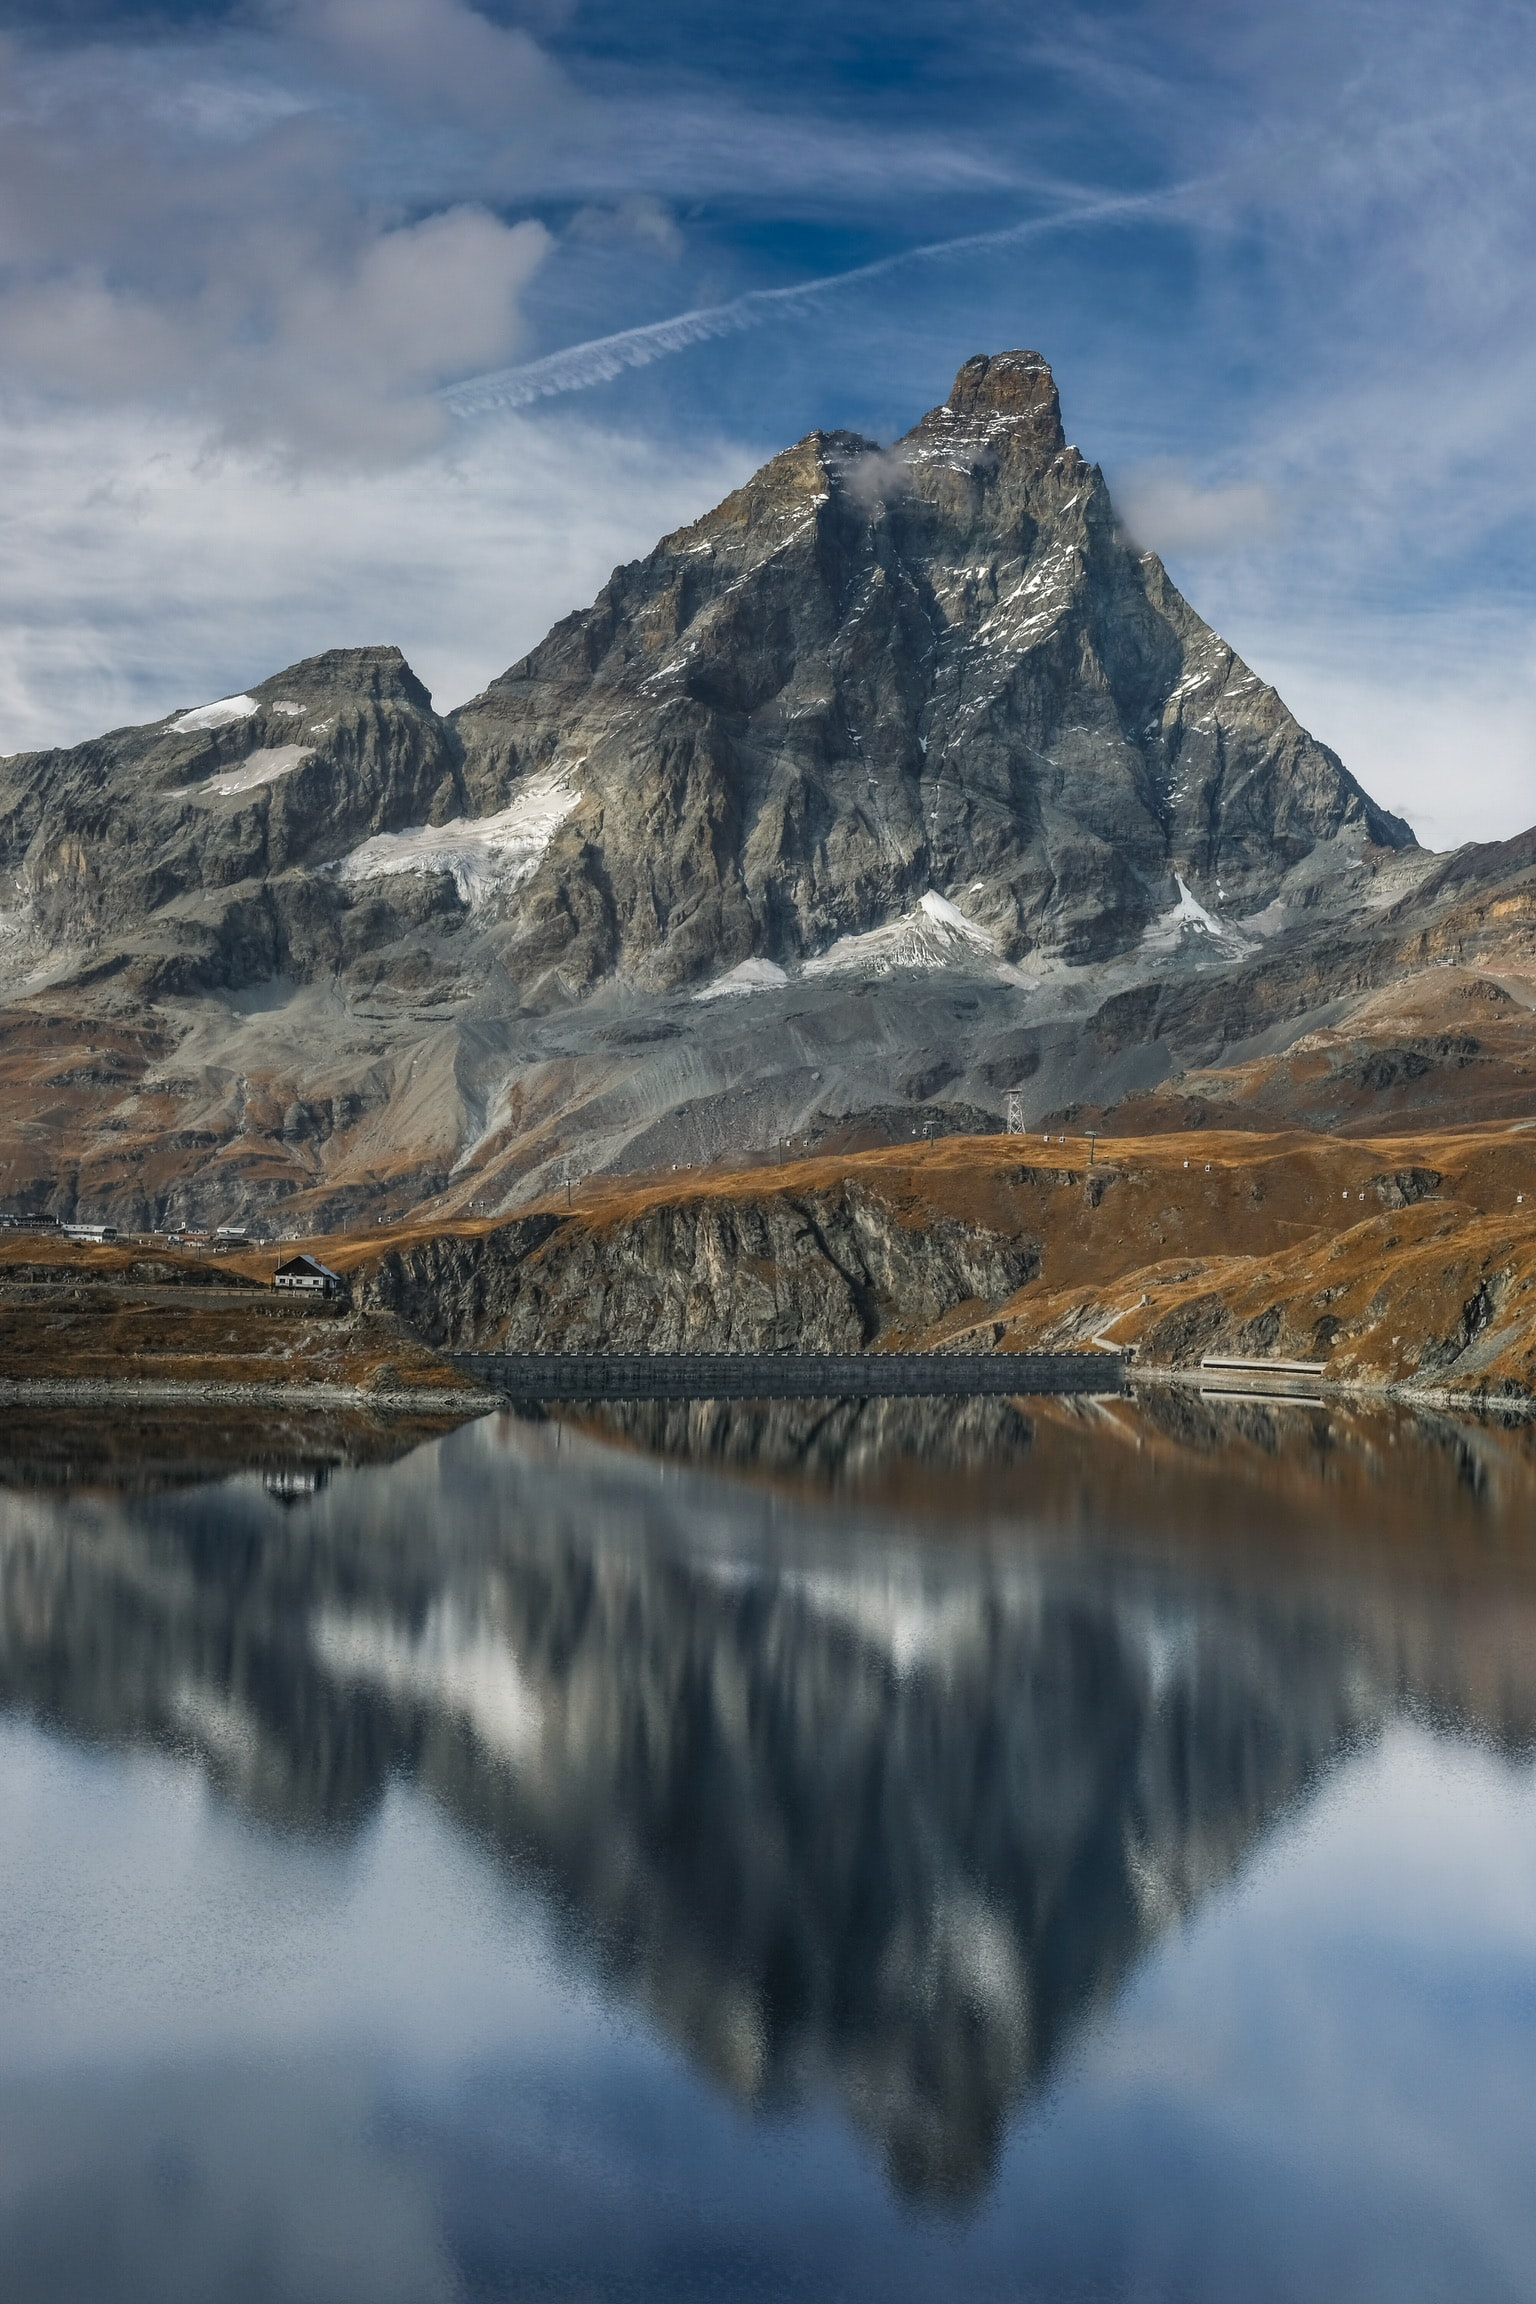 Image of a mountain overlooking a lake